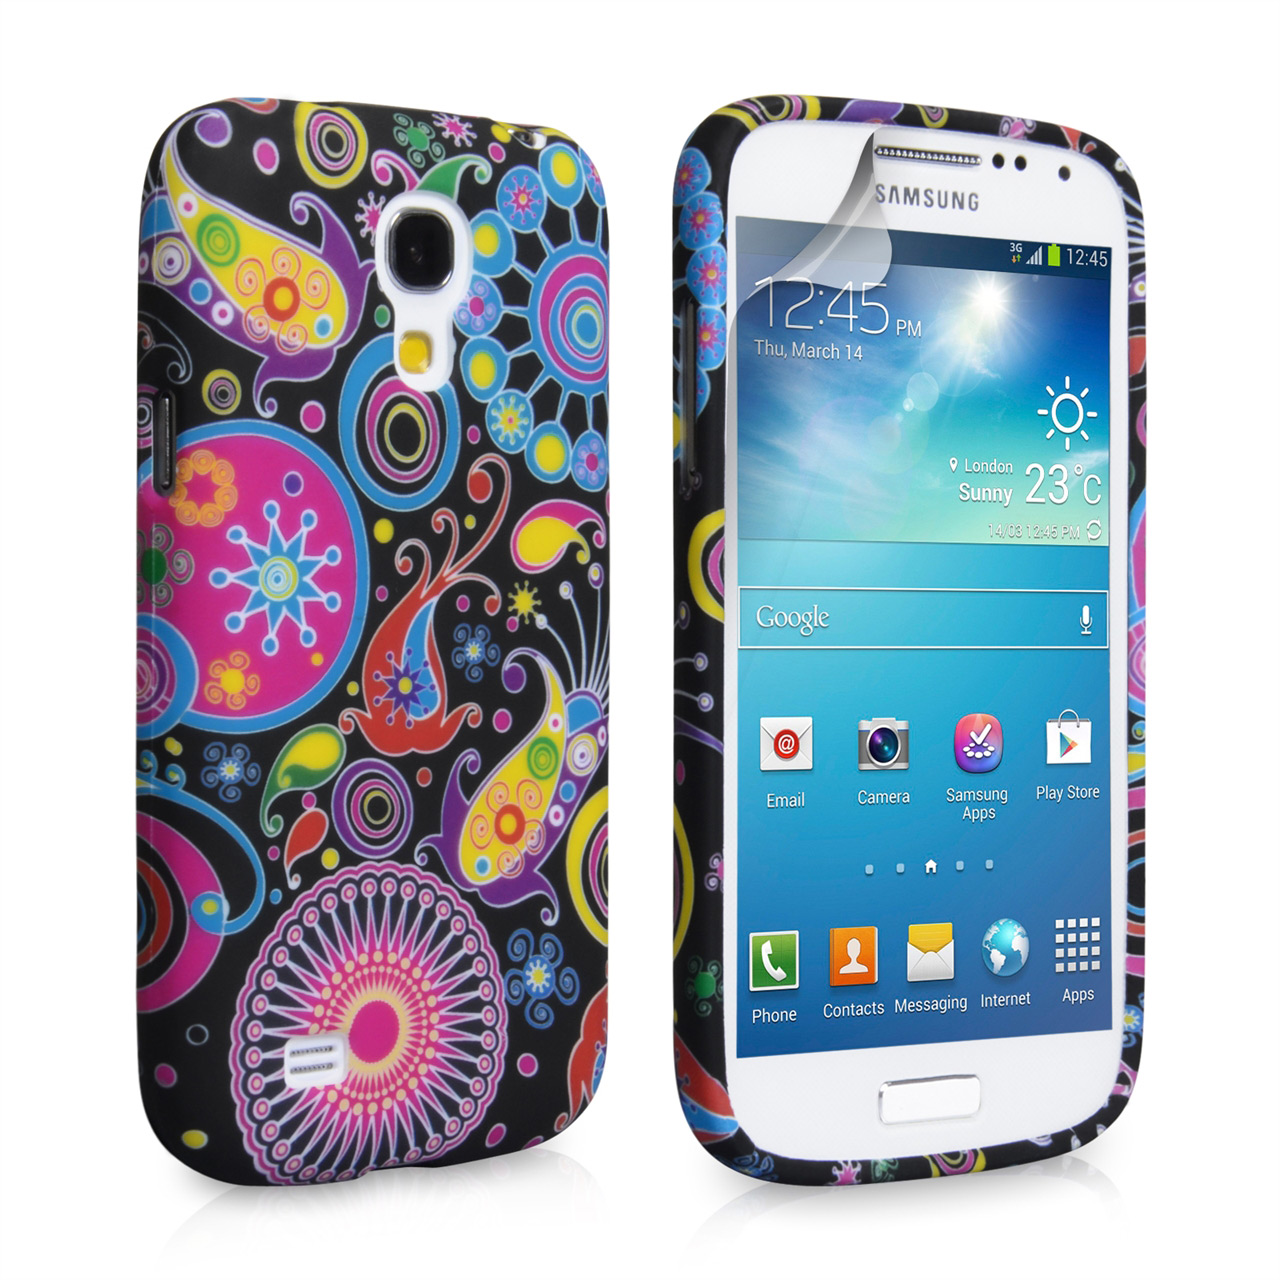 Samsung Galaxy S4 Mini Cases Mobile Madhouse Case Oppo Jelly Yousave Accessories Jellyfish Silicone Gel